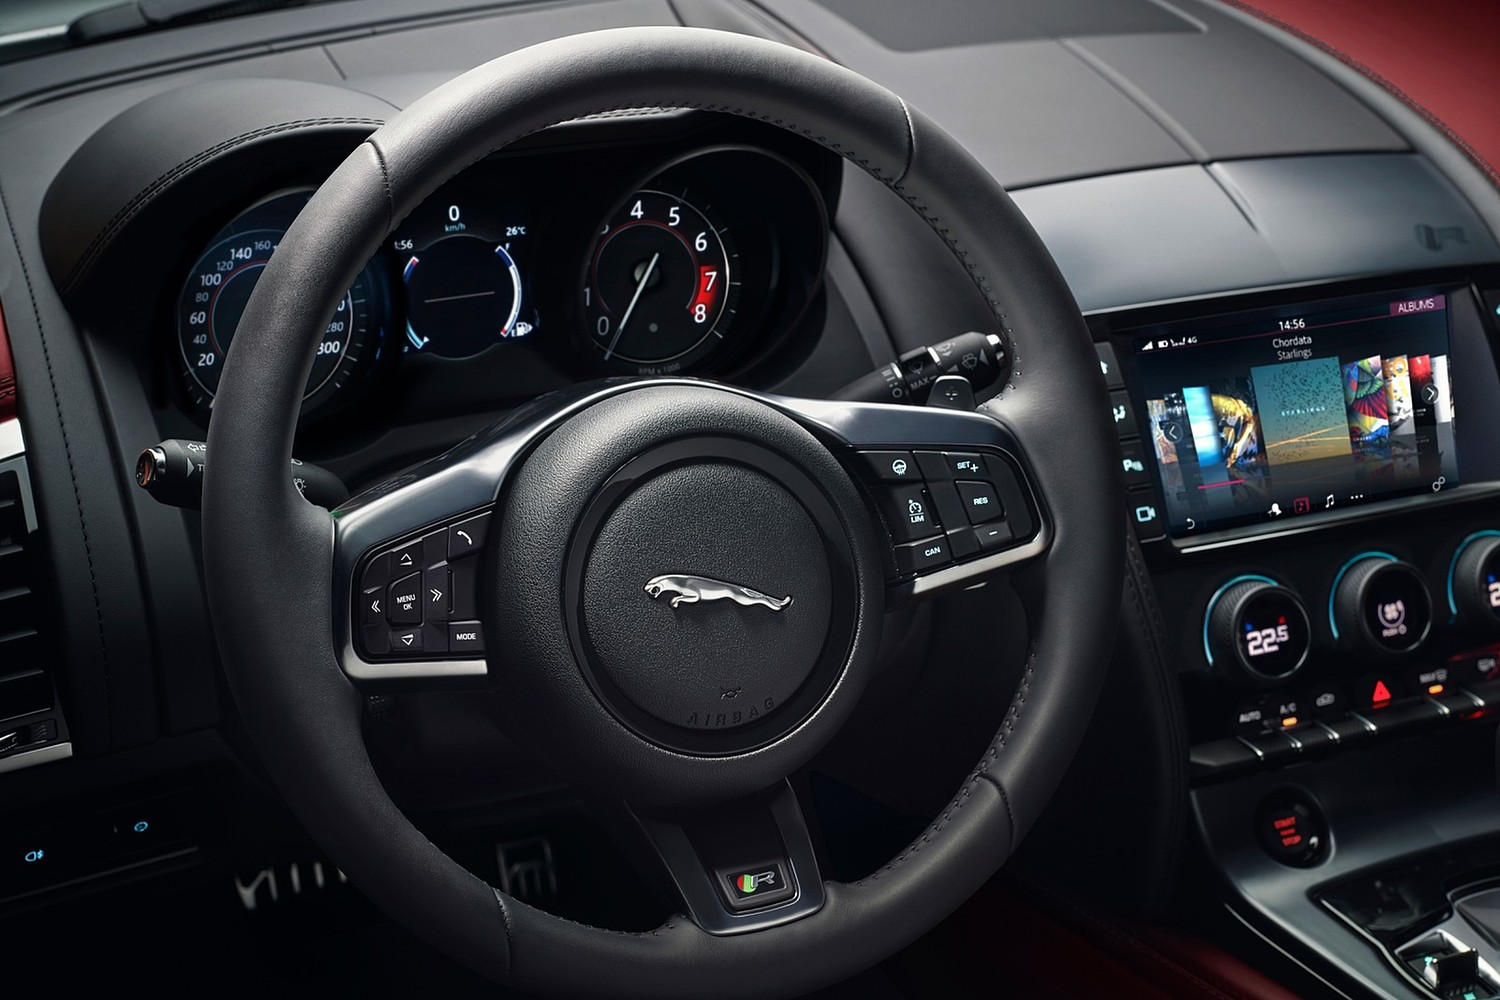 2018 Jaguar F-TYPE R Coupe Steering Wheel Detail